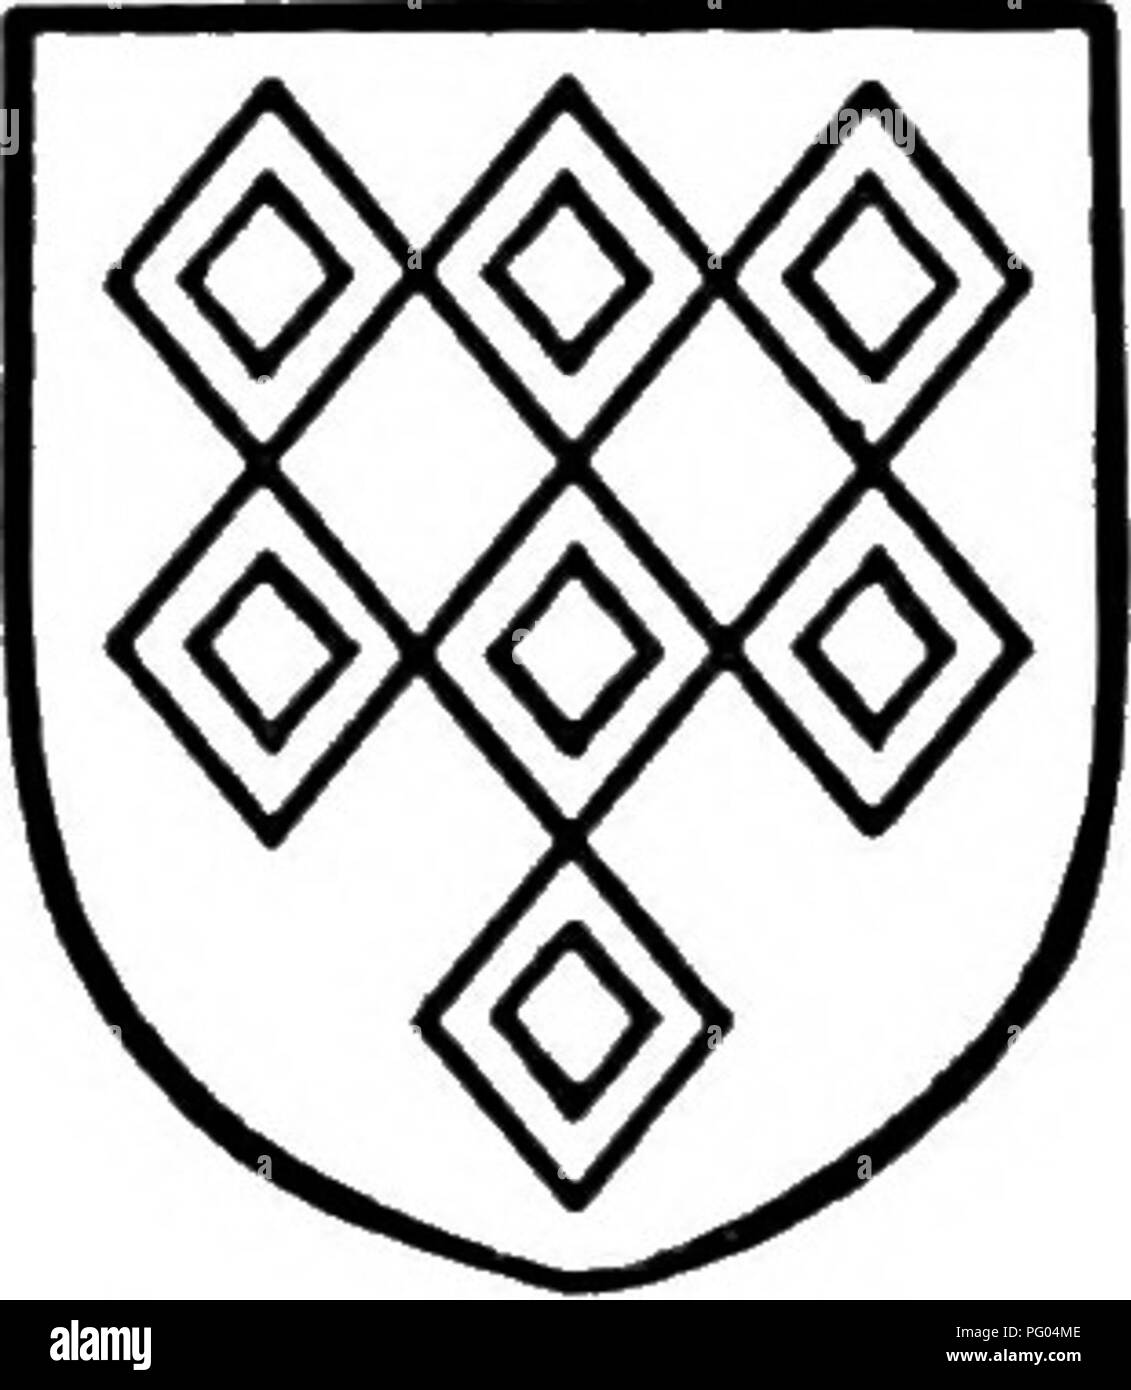 ". The Victoria history of the county of Bedford. Natural history. Spigurnel. Gules fretty argent a chief or •with a lion passant gules therein. Braybroke. seven voided gules. Argent lozenges In 1359, on the death of Sir Gerard Braybroke, the manor passed to his son Gerard,"" and it continued in the possession of the Braybroke family. At the death of Sir Gerard Braybroke in 1427 it passed to Sir William Babyngton, a justice of Common Pleas, one of the executors of Sir Gerard Braybroke's will."" Sir William Babyngton died seised of the manor in 1454, leaving a son and heir William,"" - Stock Image"